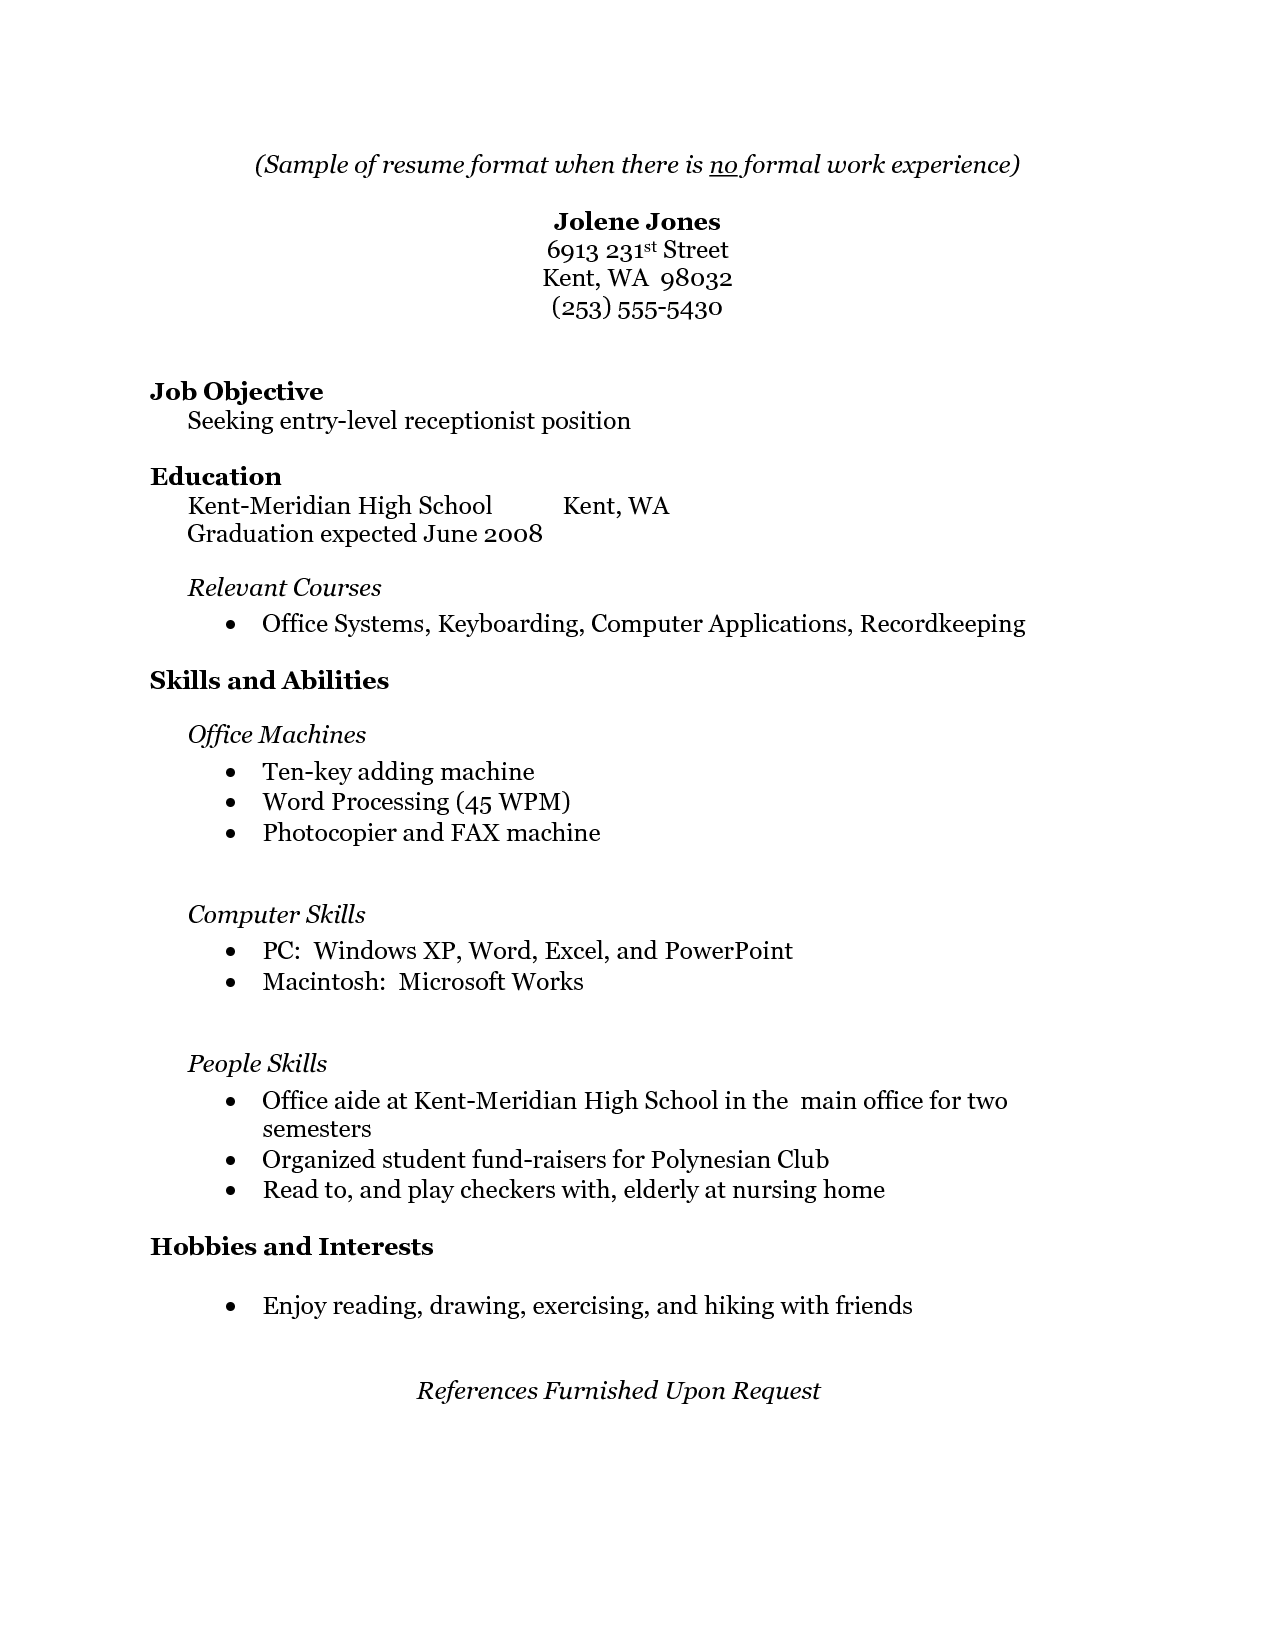 Formal Resume Template Pinjobresume On Resume Career Termplate Free  Pinterest  Job